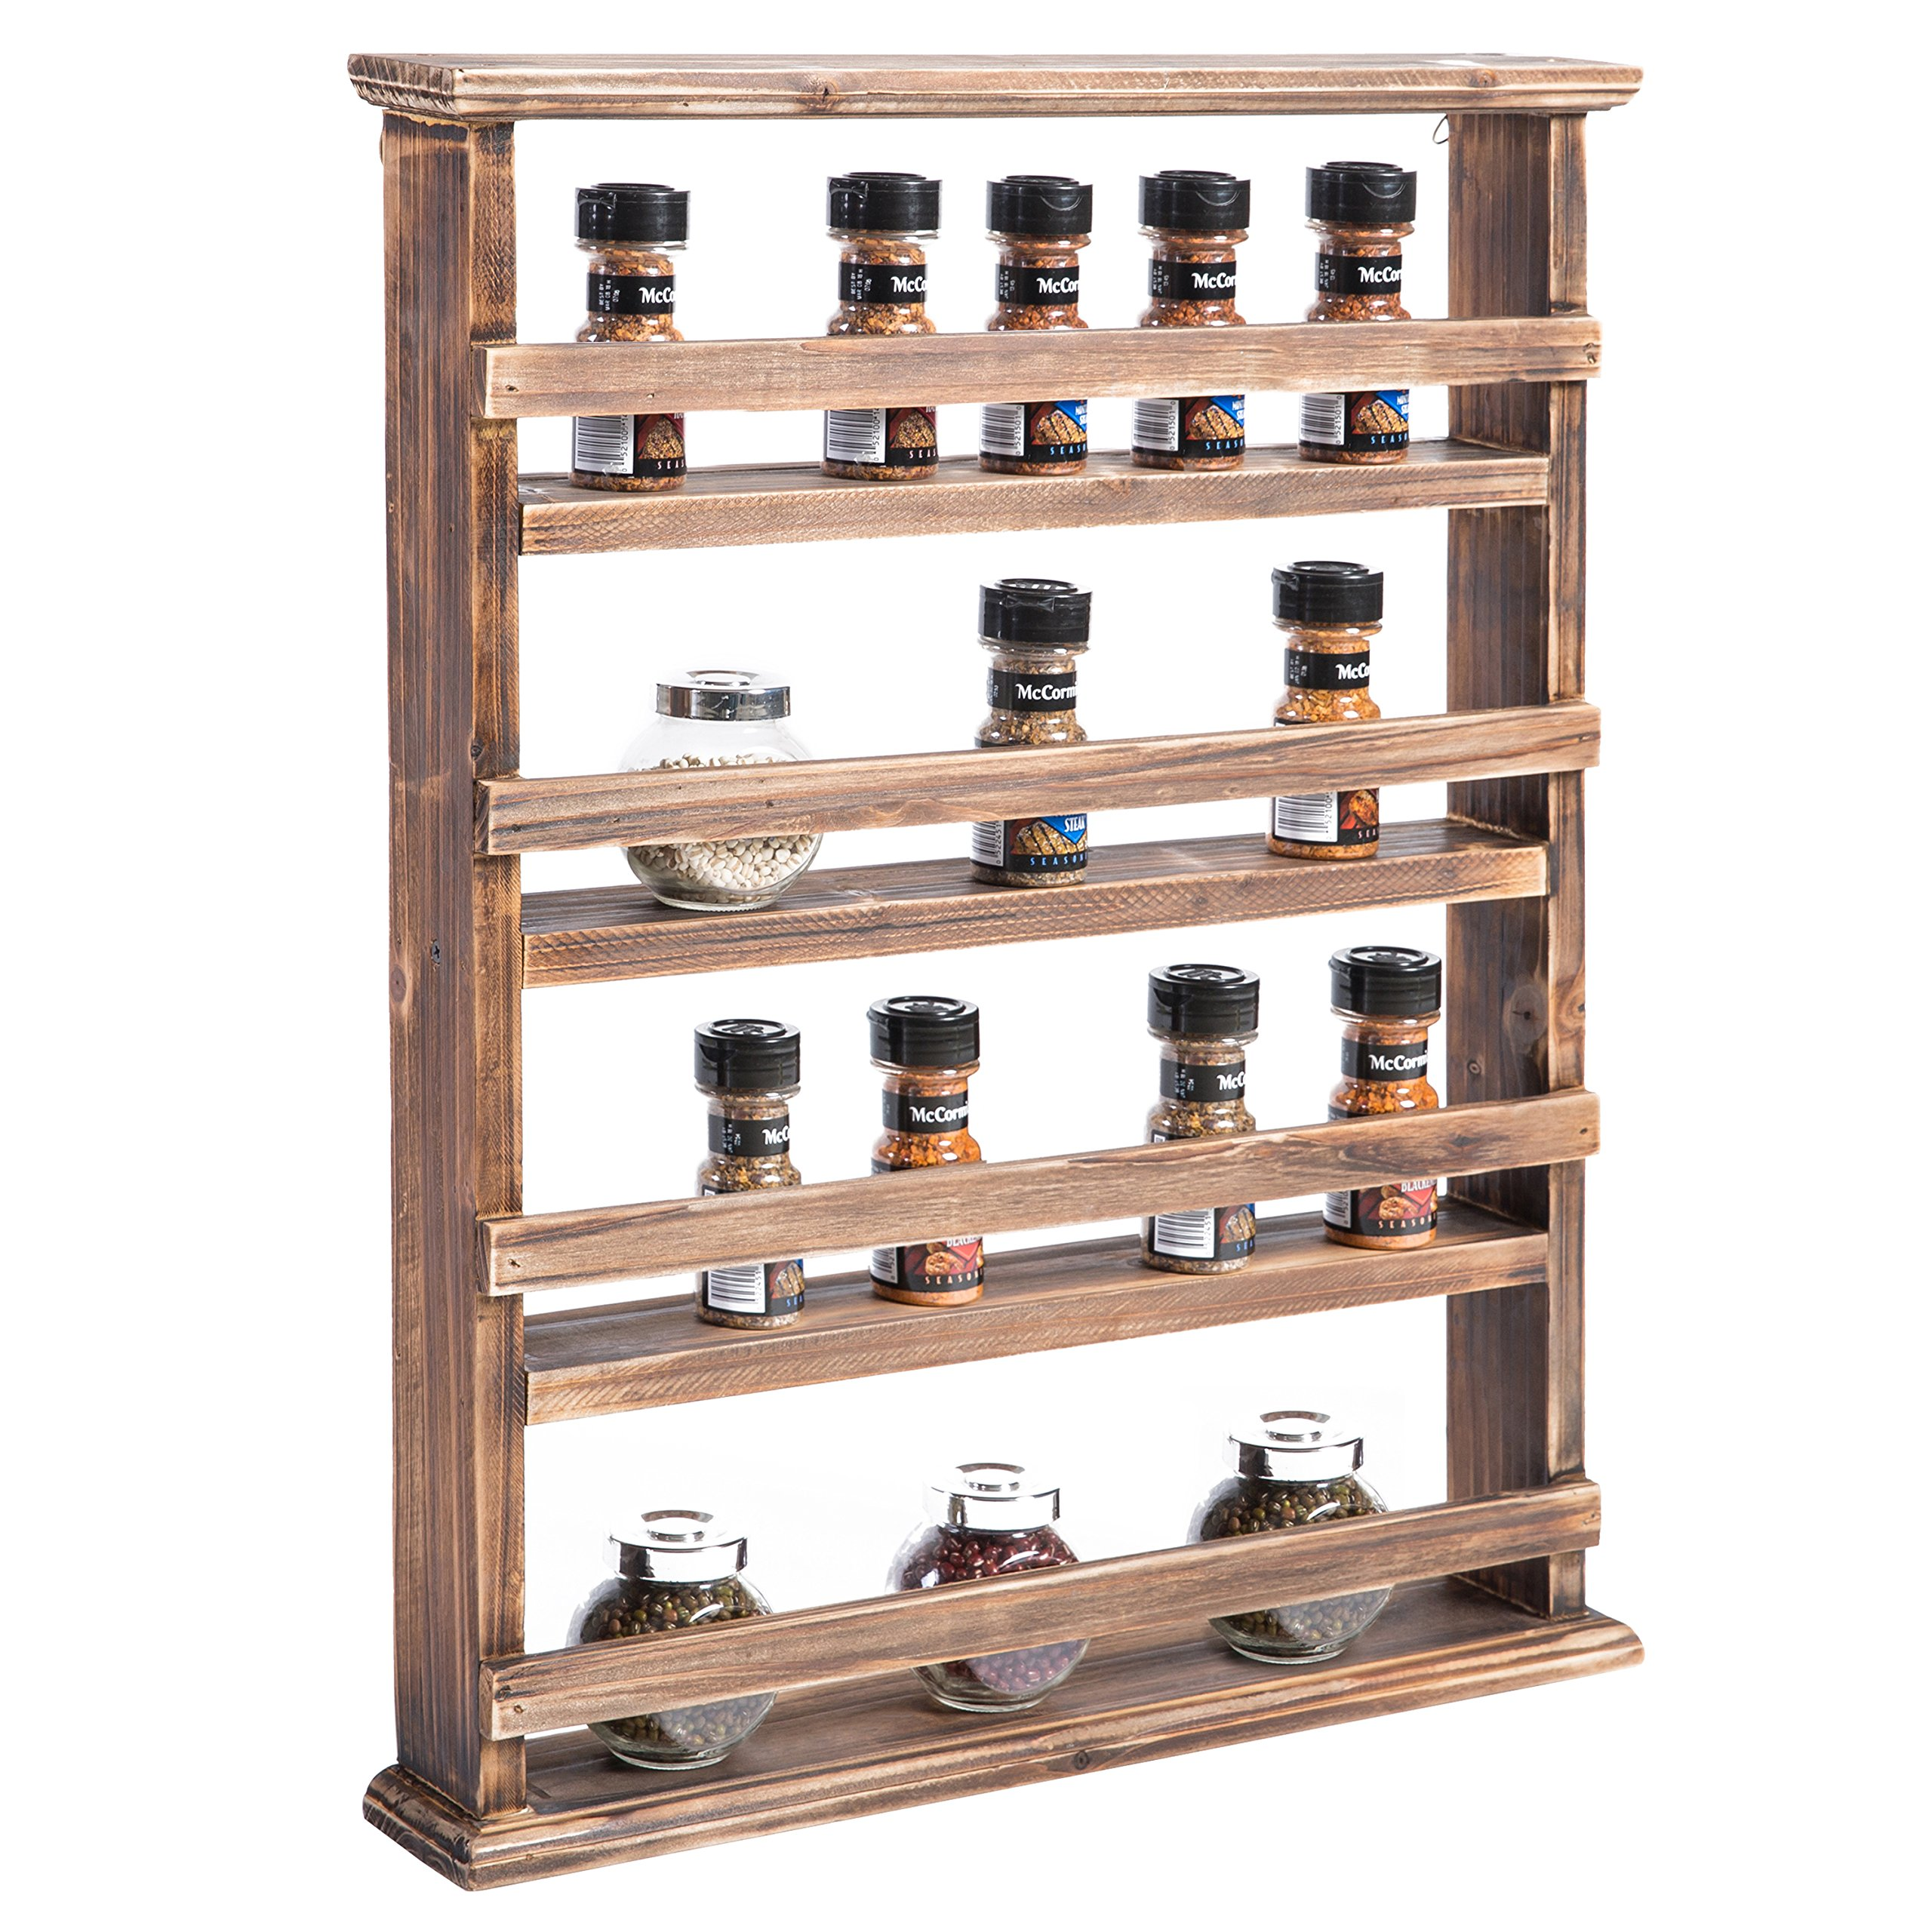 MyGift 4-Tier Country Rustic Wall-Mounted Wood Spice Rack Display Shelves